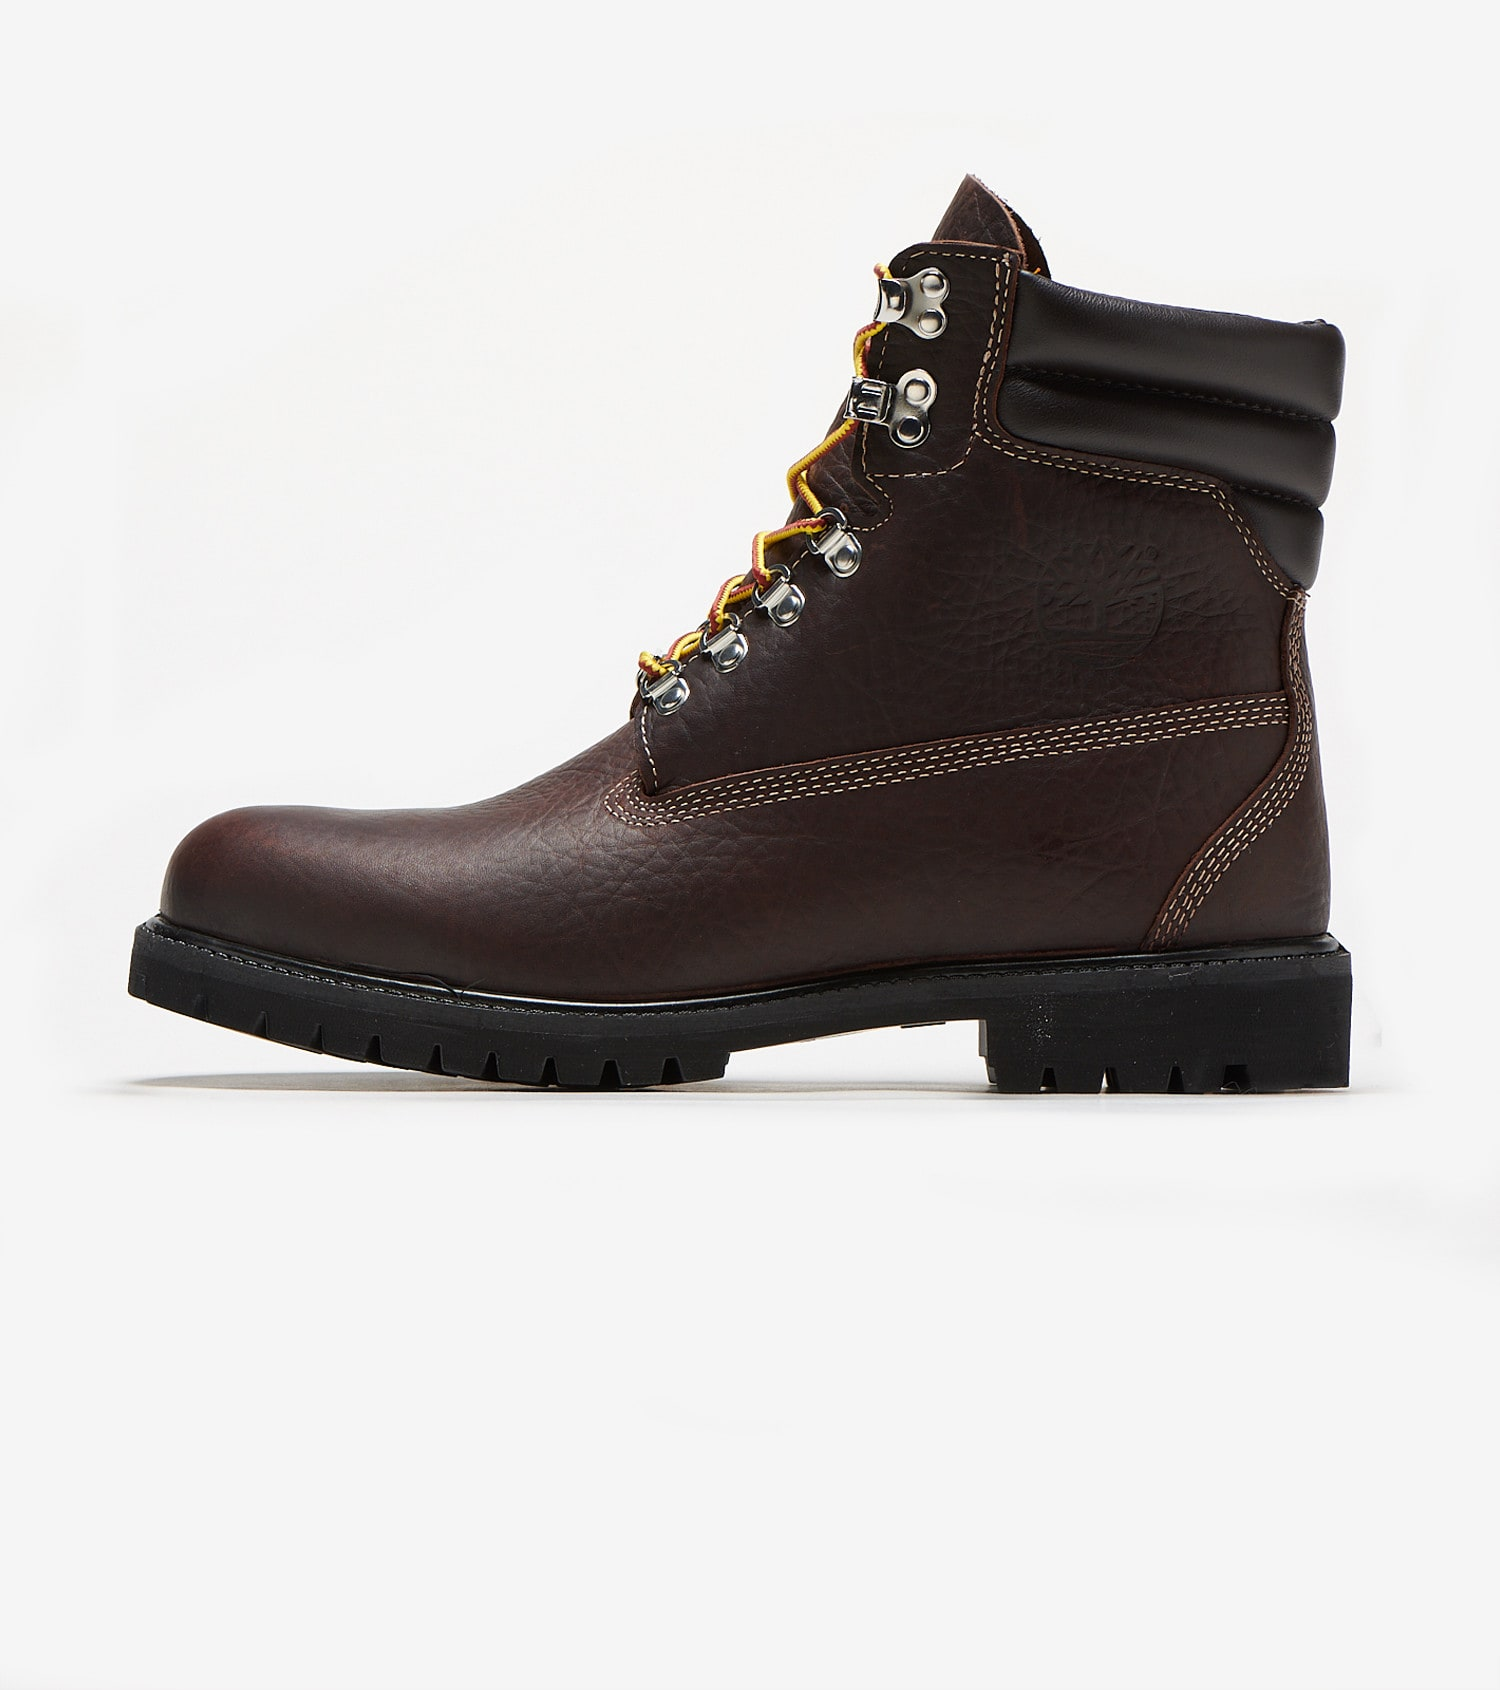 6 Premium 640 Below Boot Men'S 40 Below Timberland Boots Shoes